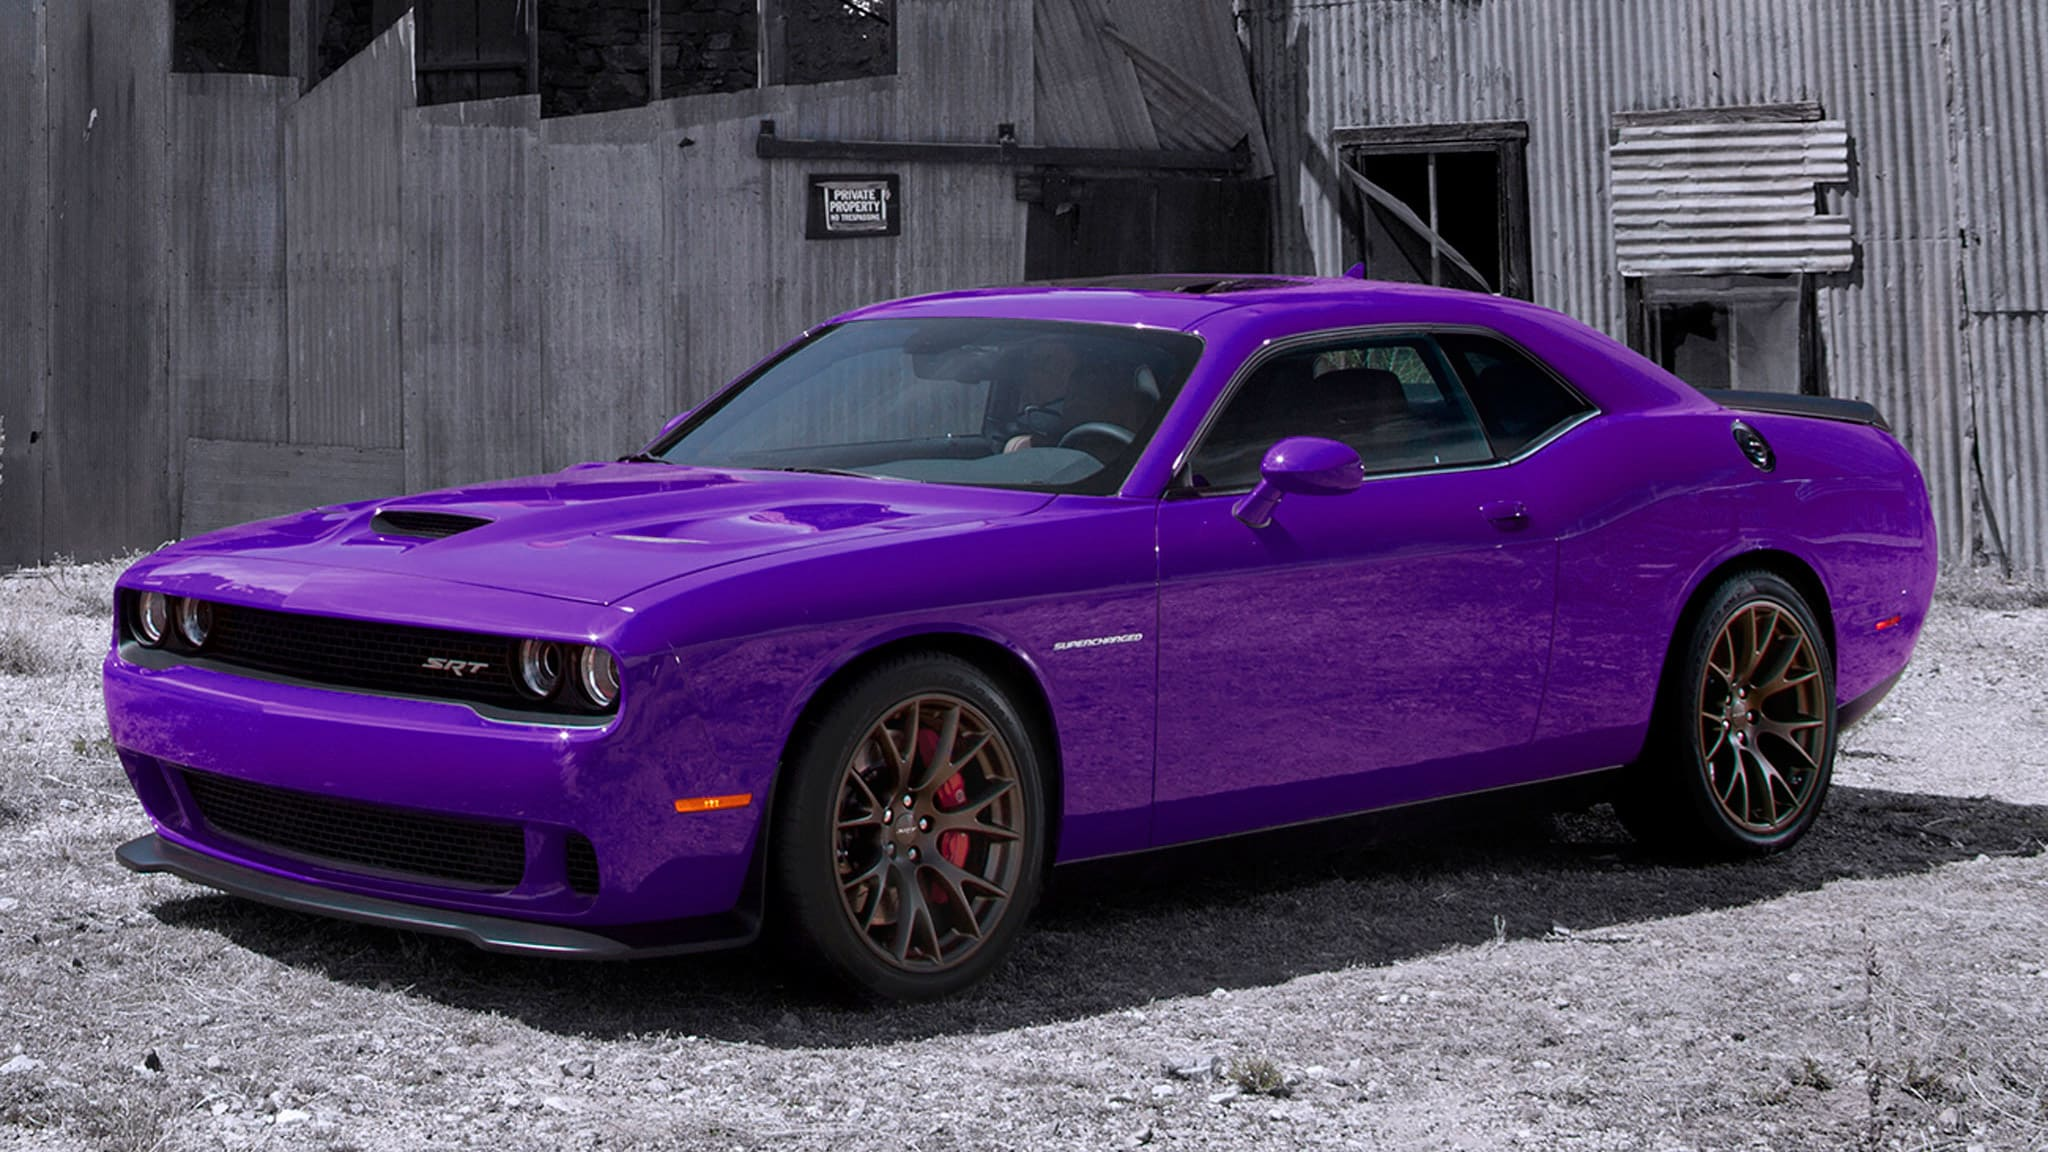 SRT Challenger Hellcat For Sale in Carrollton, GA